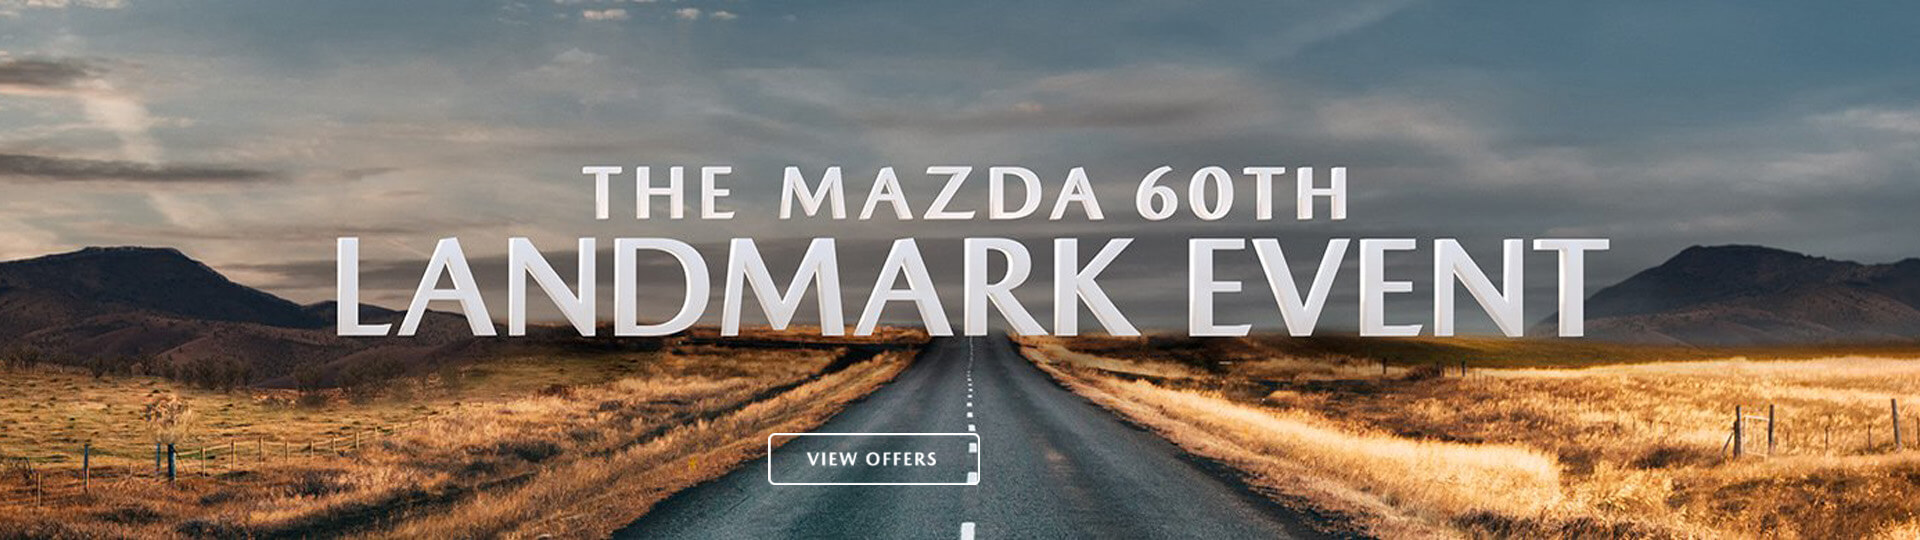 The Mazda 60th Landmark Event